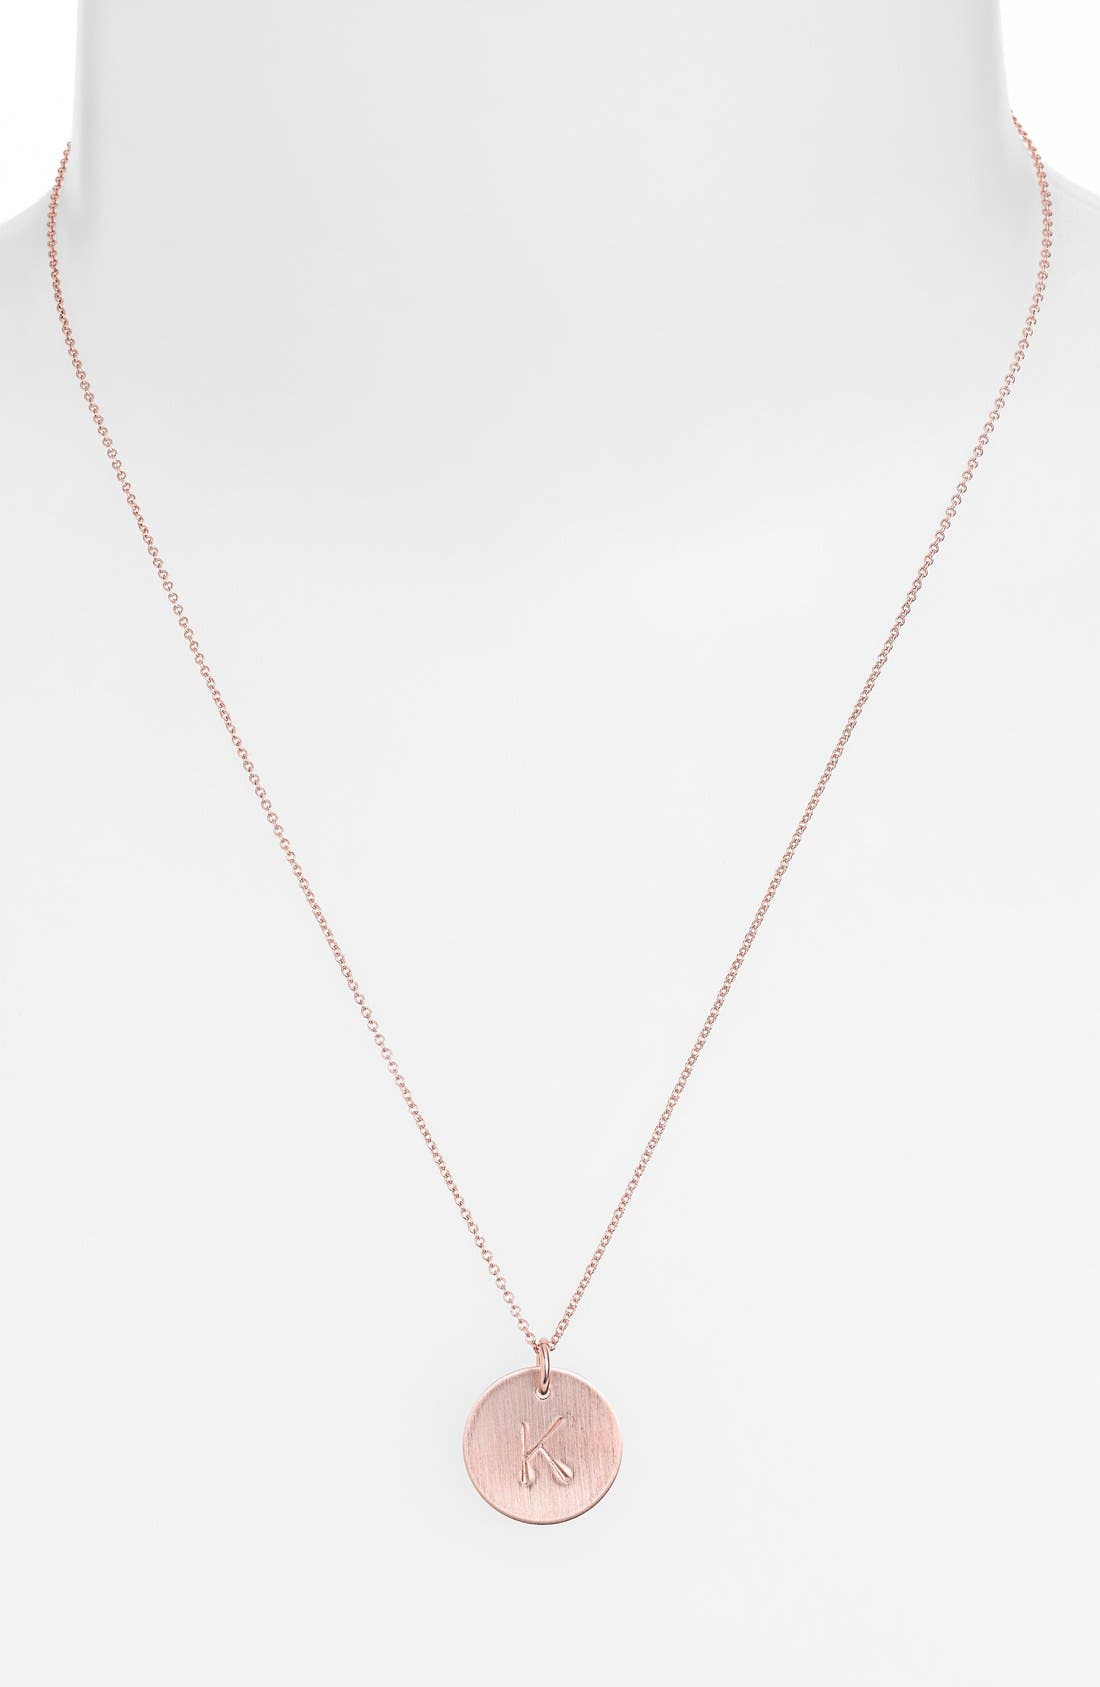 14k-Rose Gold Fill Initial Disc Necklace,                             Alternate thumbnail 37, color,